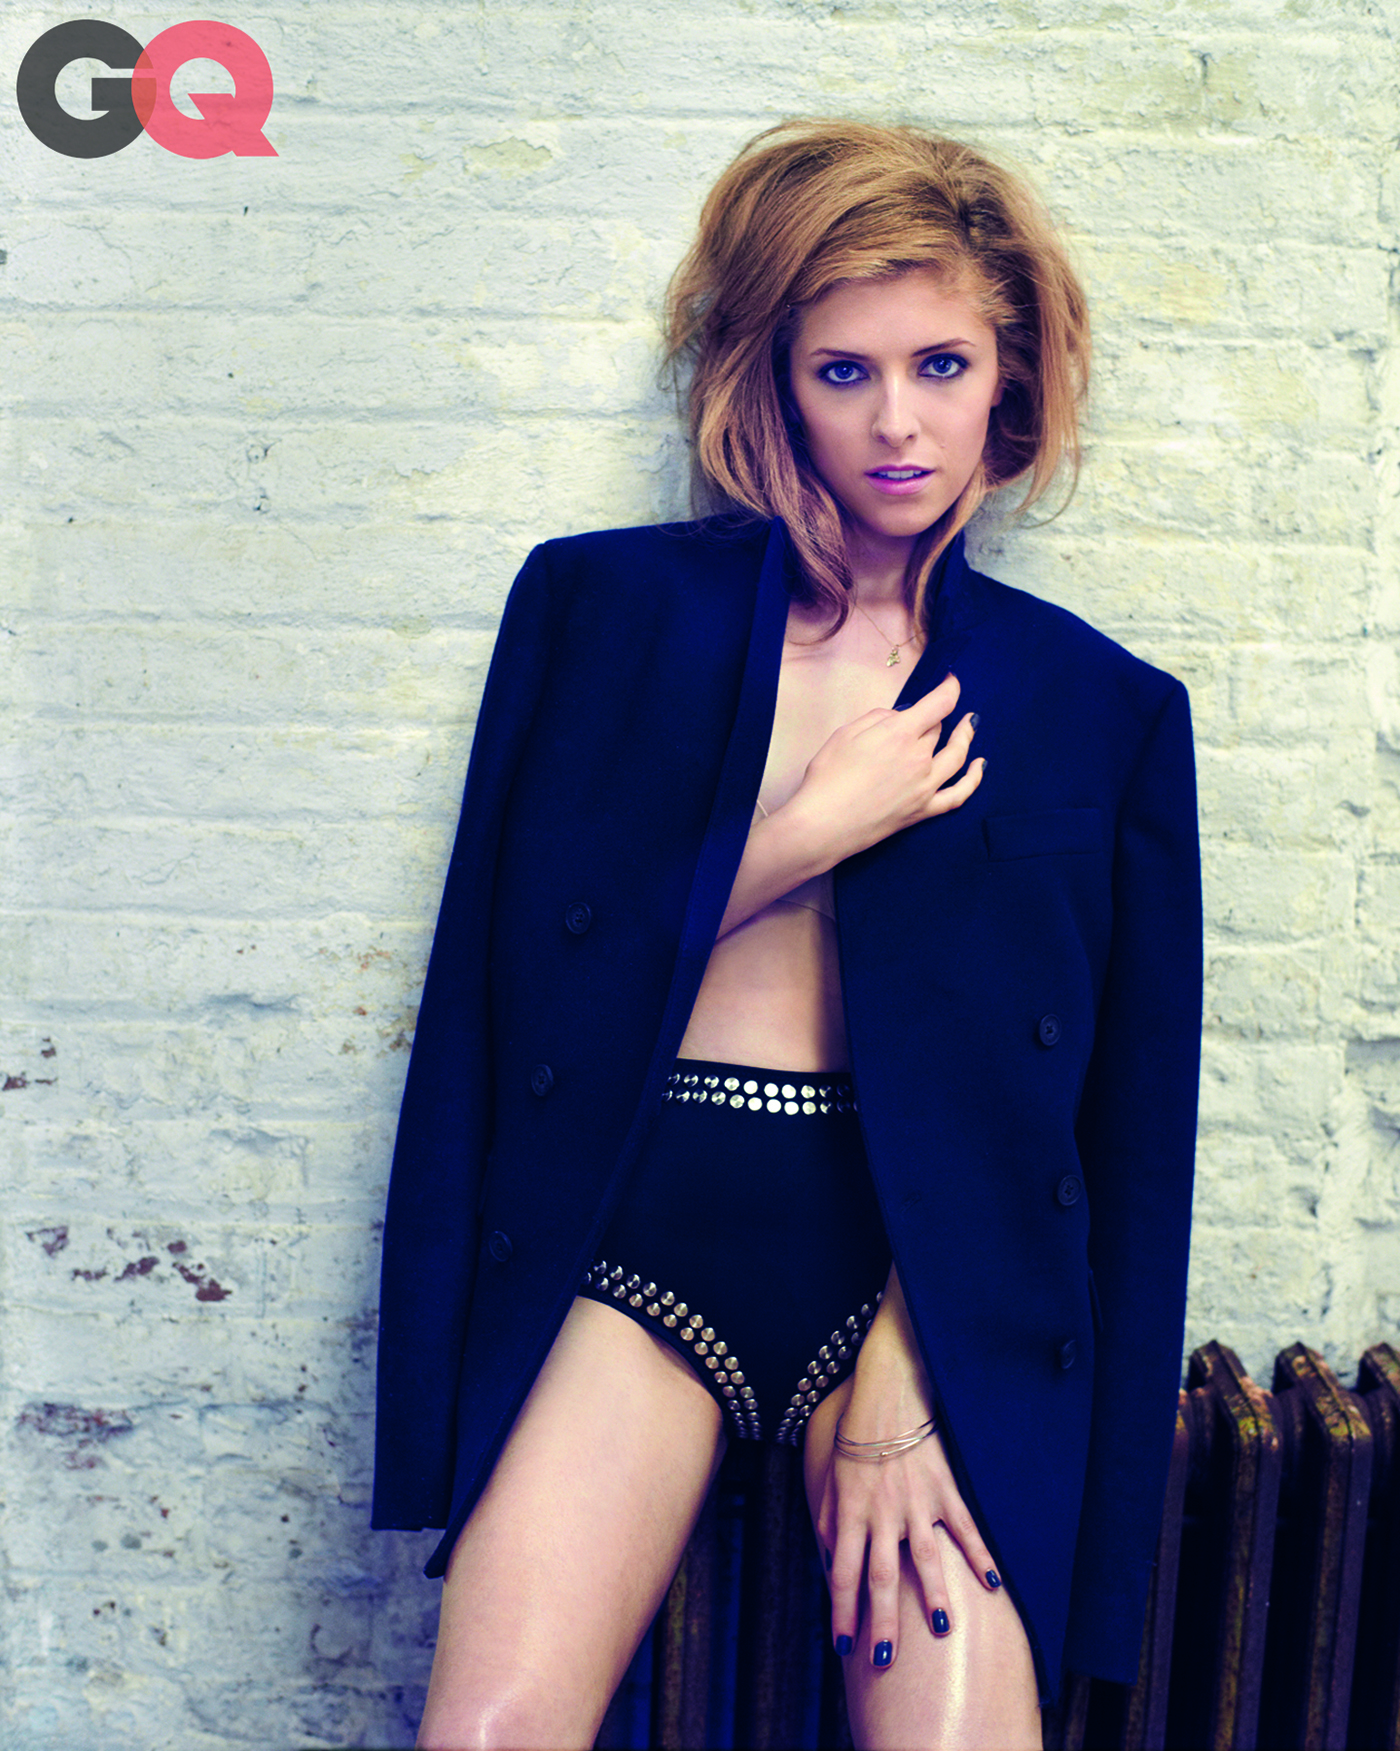 Anna Kendrick (Marc Hom / GQ. The feature appears in GQ's September issue)